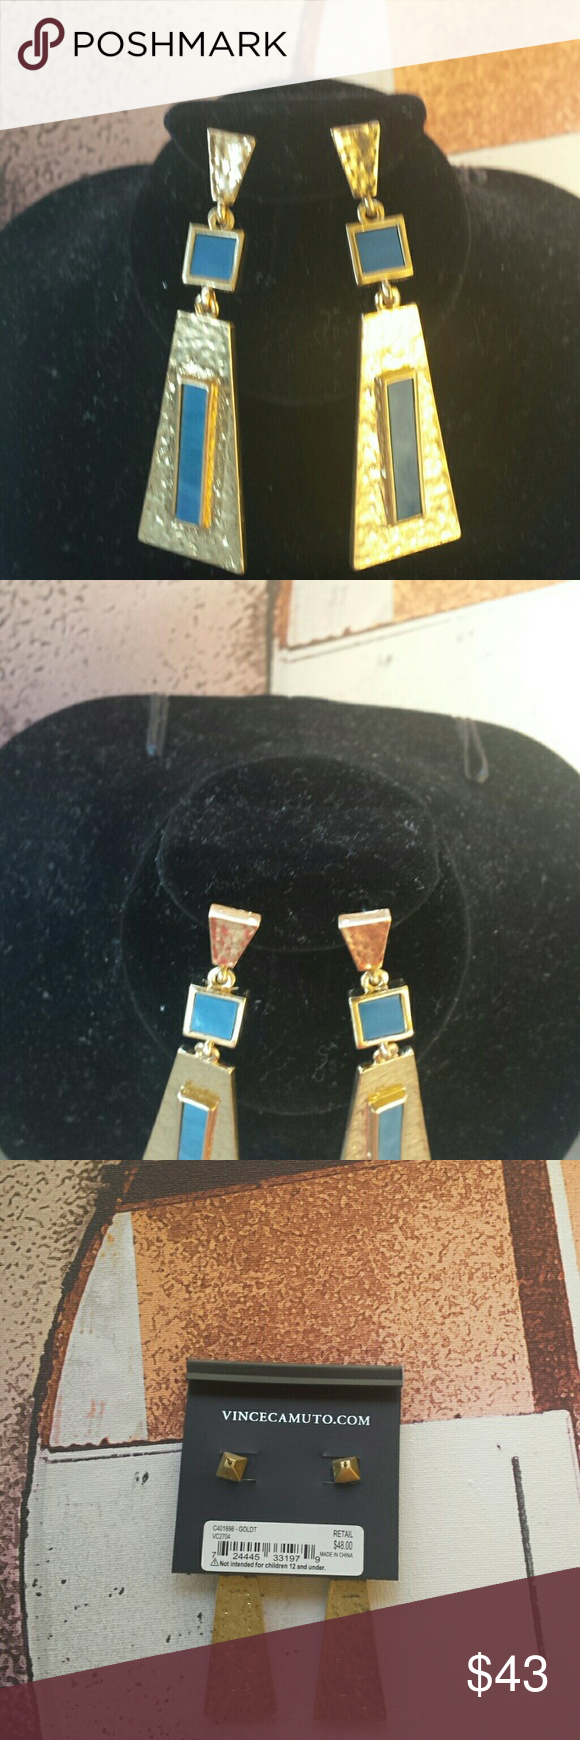 Bohemian Turquoise Triangle Earrings Pierced Triangle and gold pyramid with turquoise and unique shaped posts. Vince Camuto Jewelry Earrings